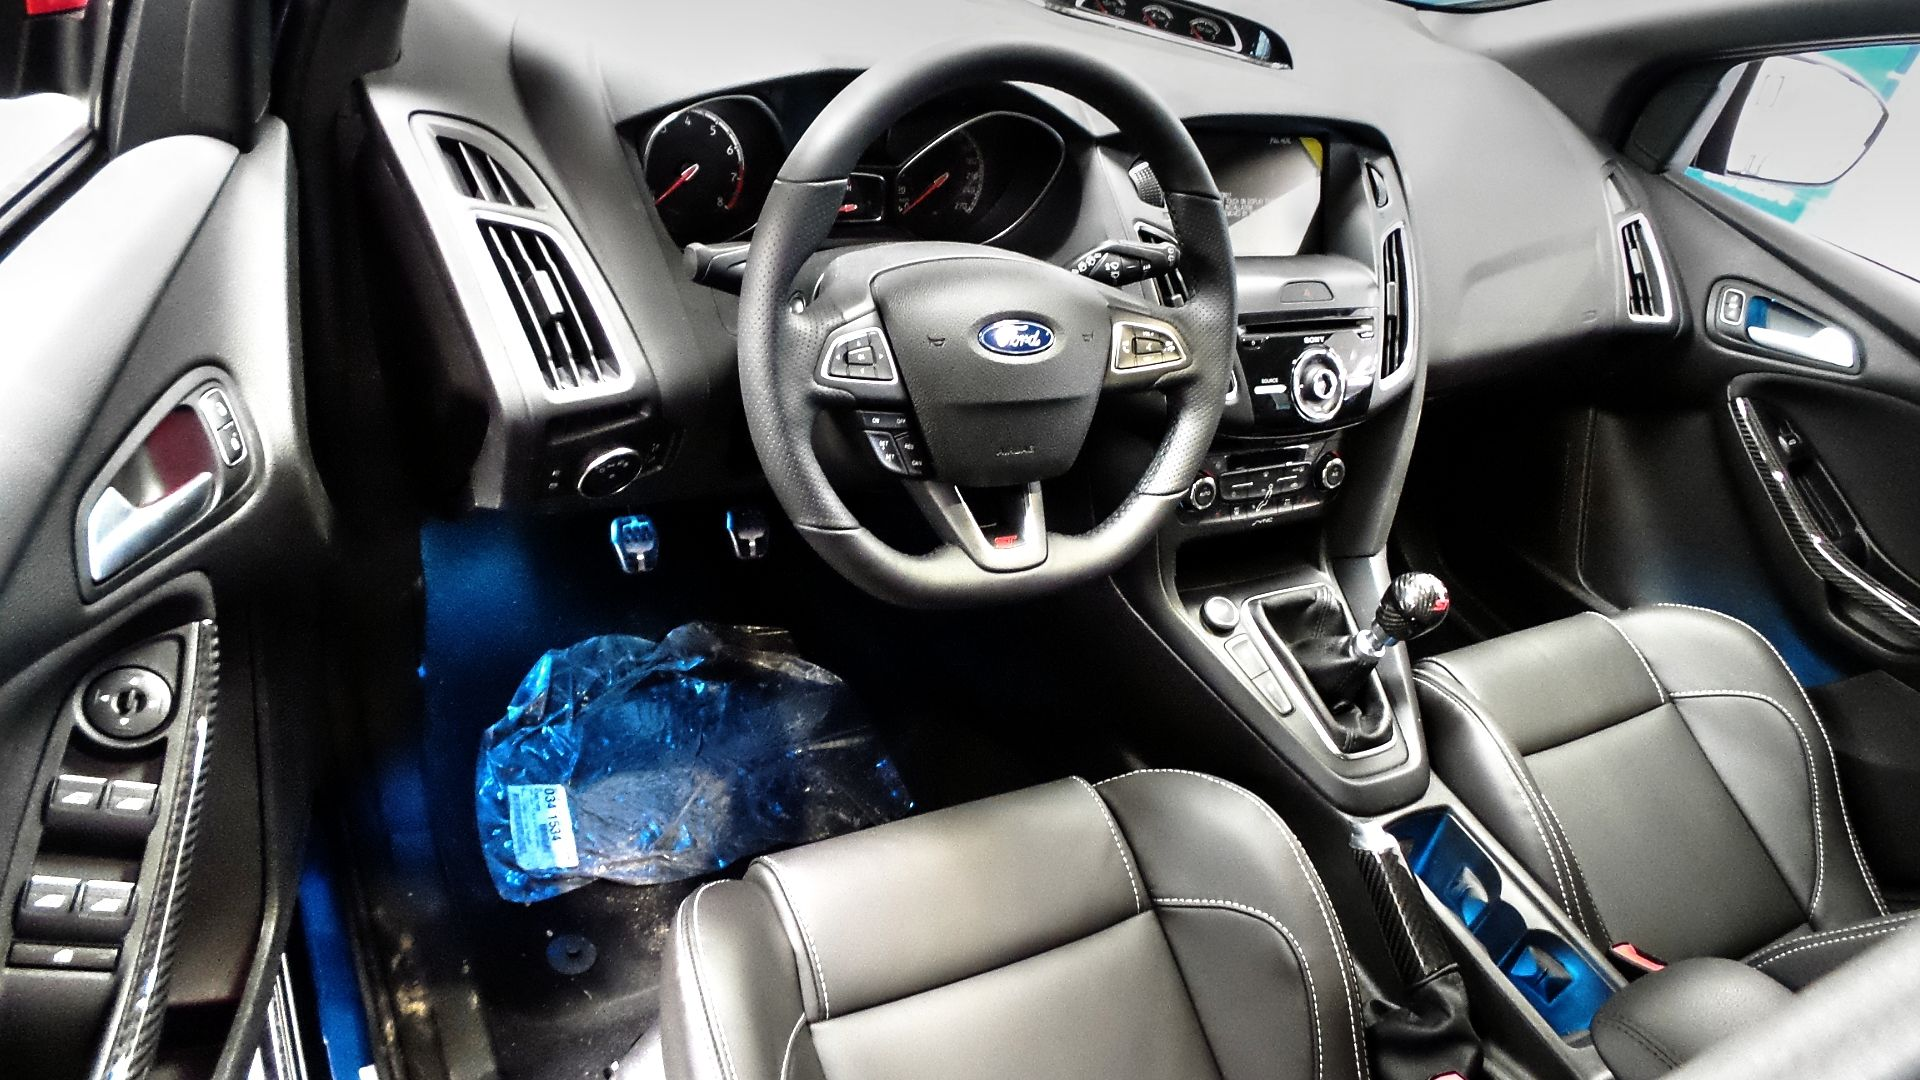 Step Inside The 2016 Ford Focus St Ford Focus St Ford Ford Focus